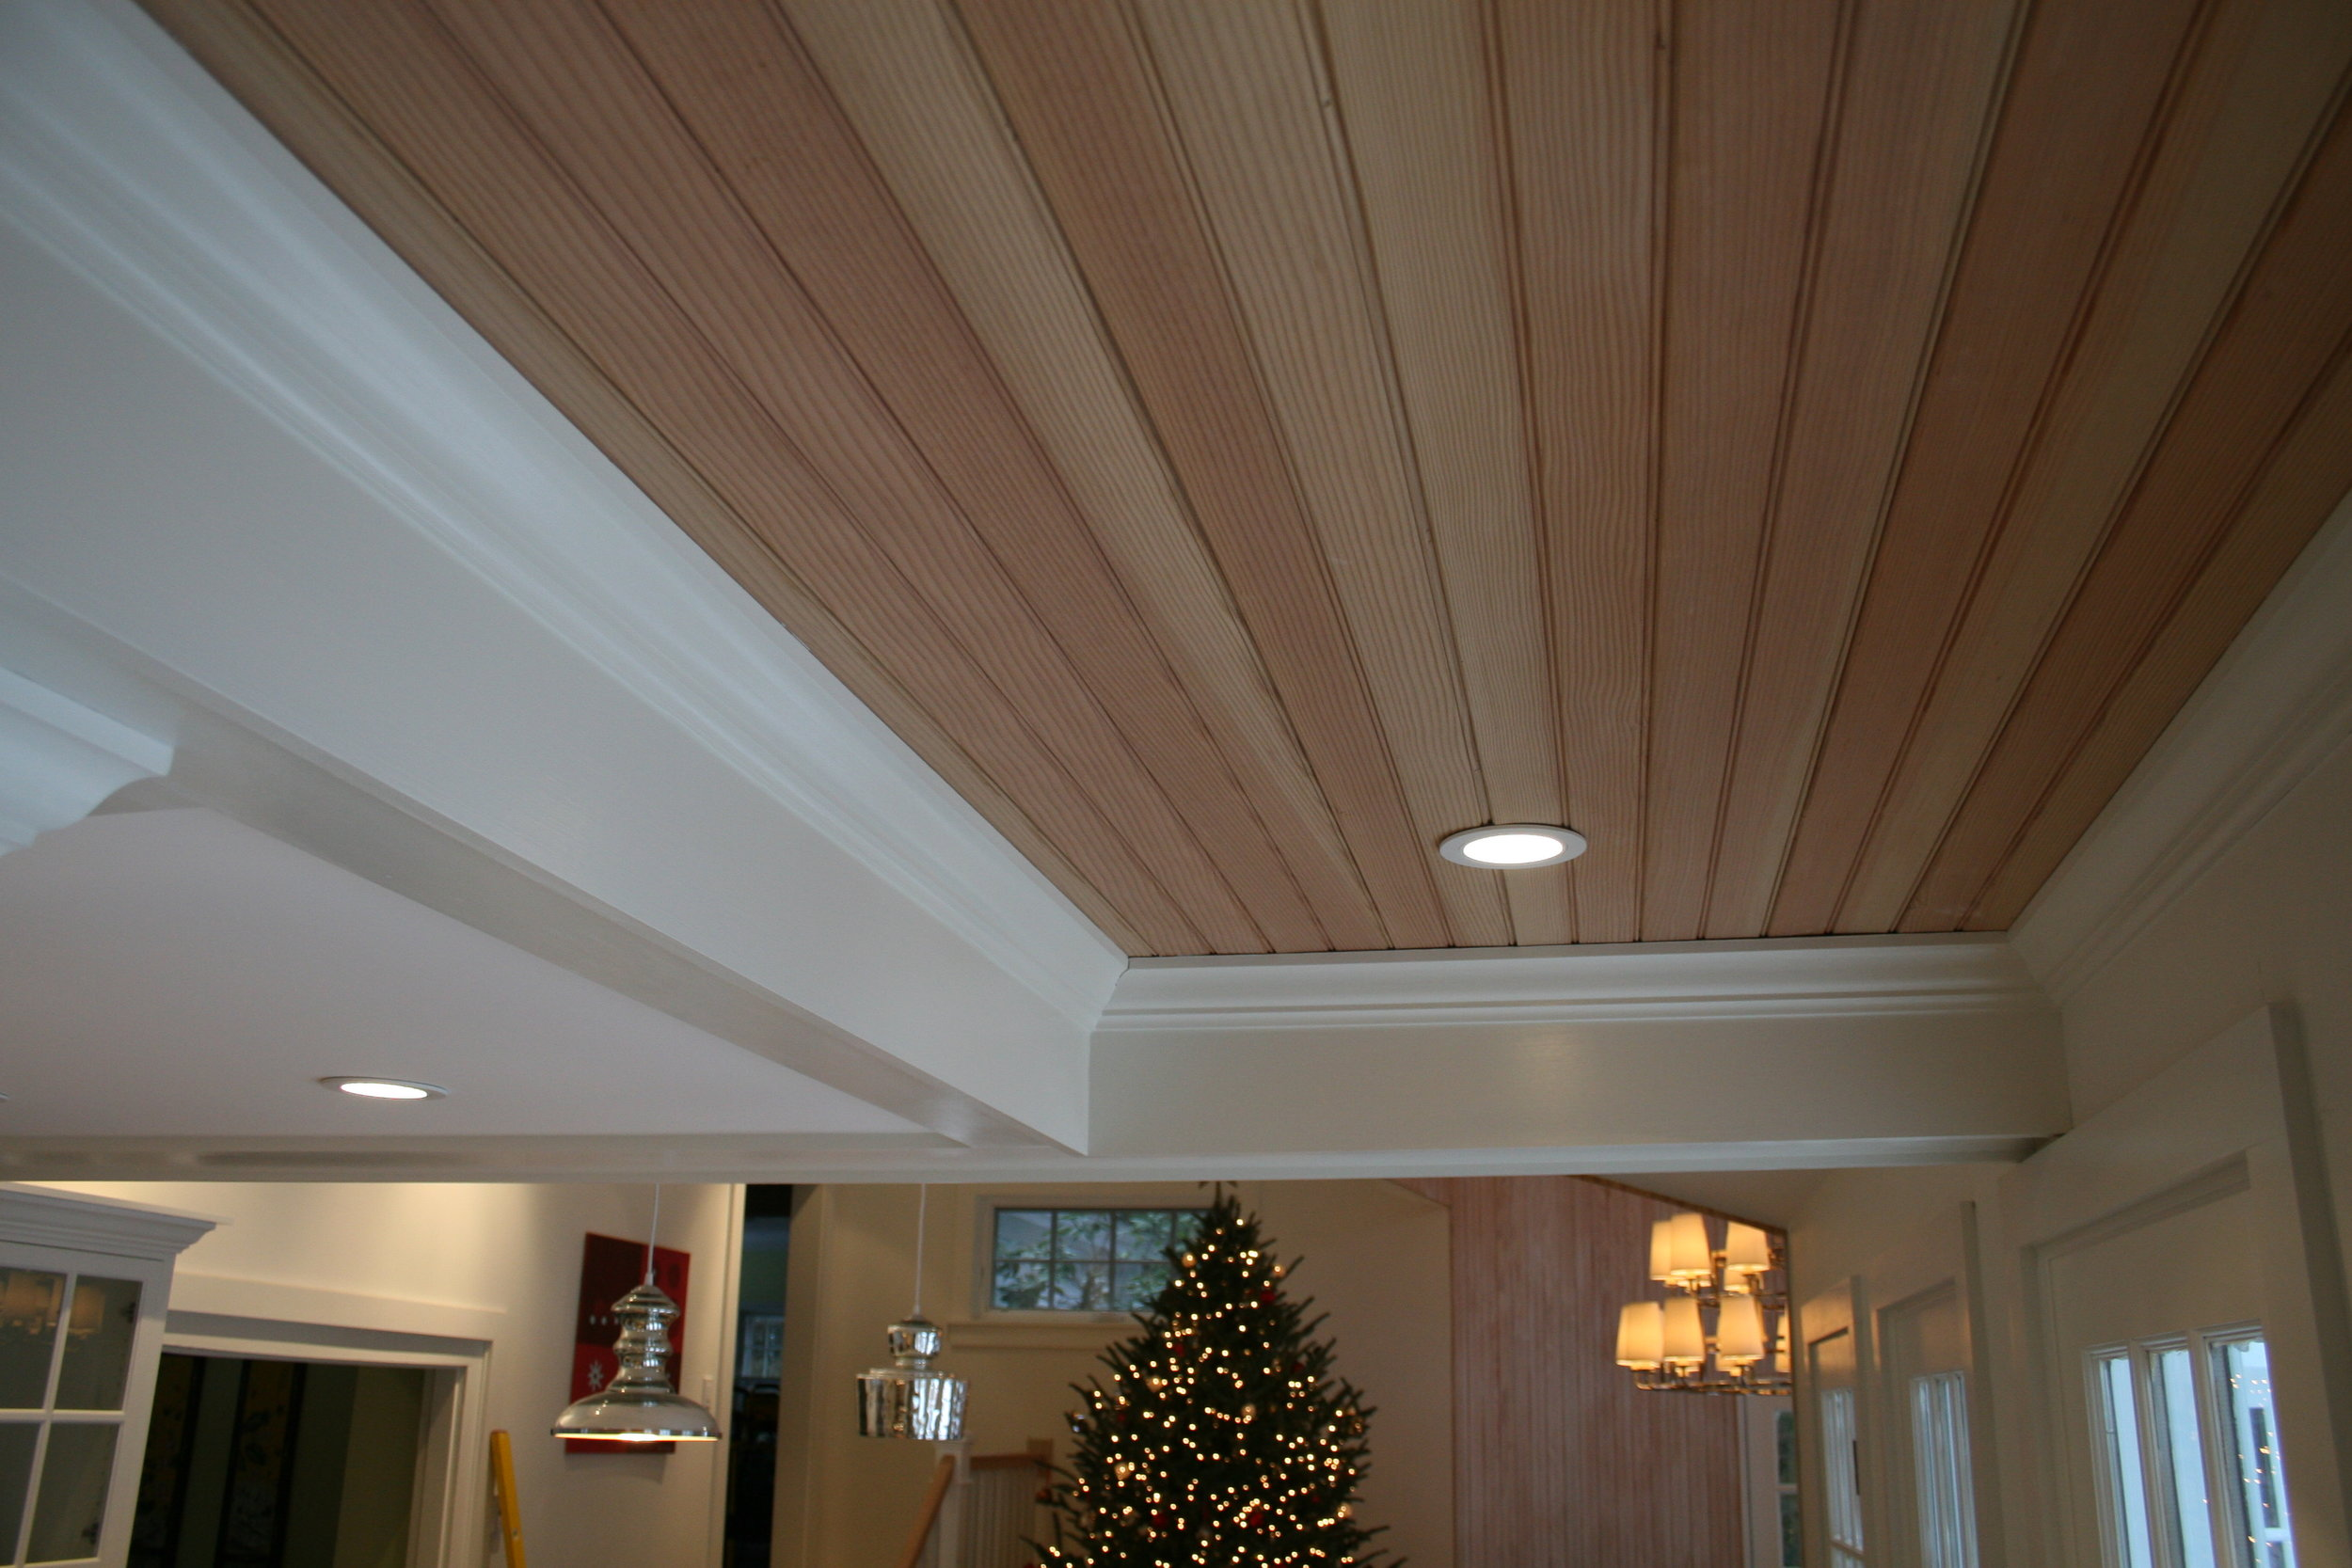 a coffered ceiling that was built in the hallway on the way to the kitchen.